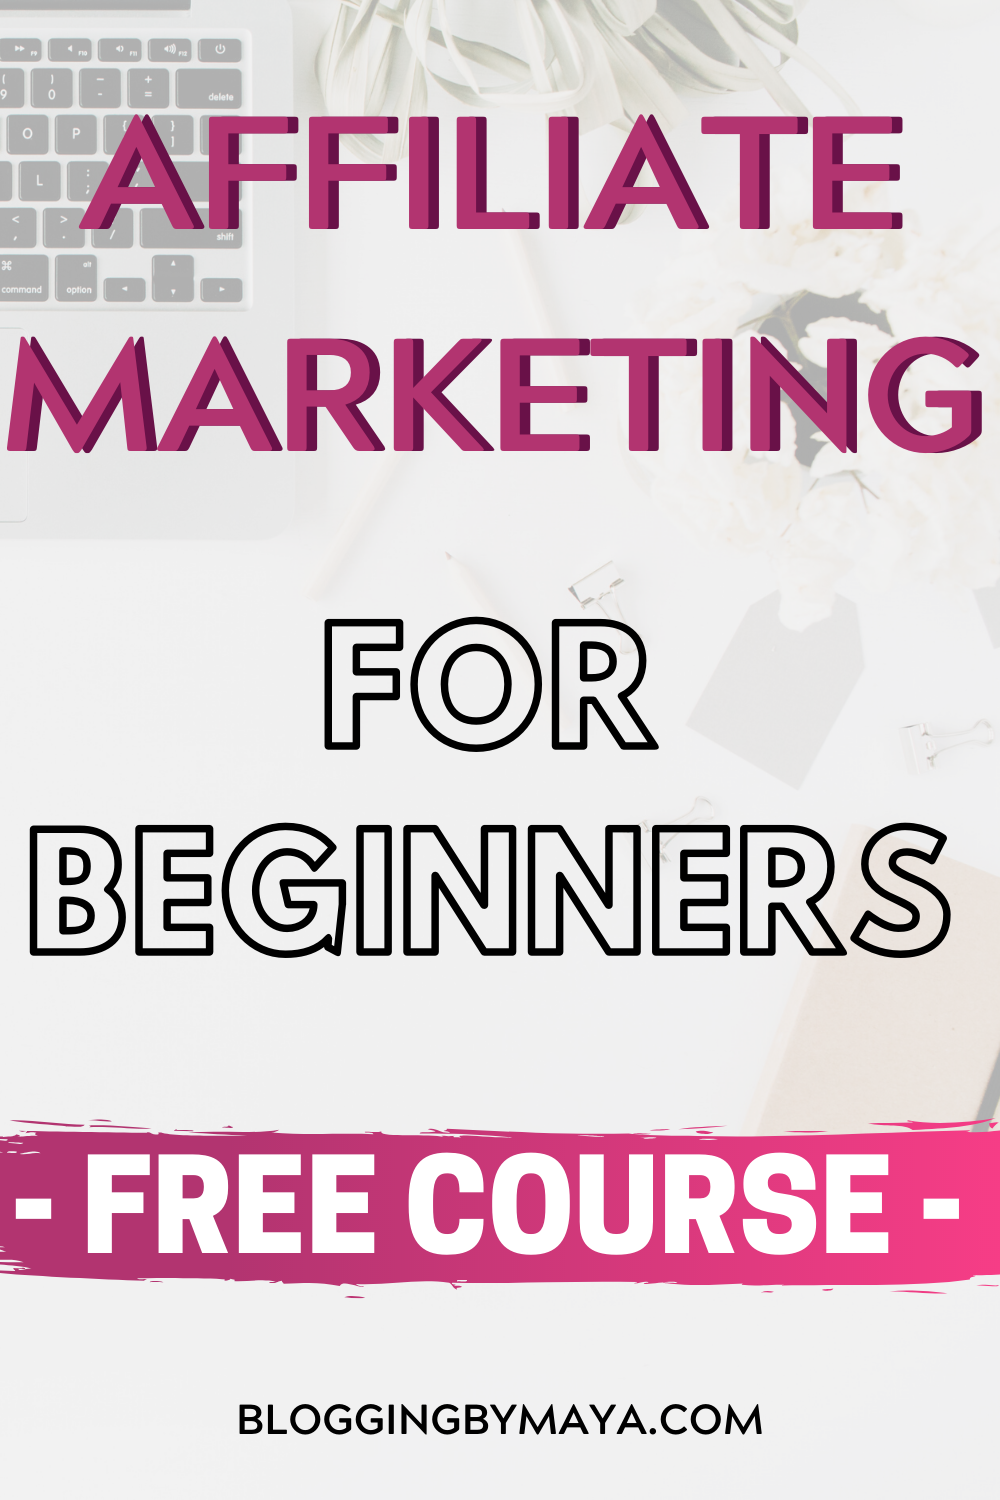 Do you want to learn how to make money with affiliate marketing? Click through for a free affiliate marketing course! A full step by step affiliate marketing for beginners guide! Make money blogging with affiliate marketing! #affiliatemarketingtips #affiliatemarketingforbeginners #makemoneyblogging